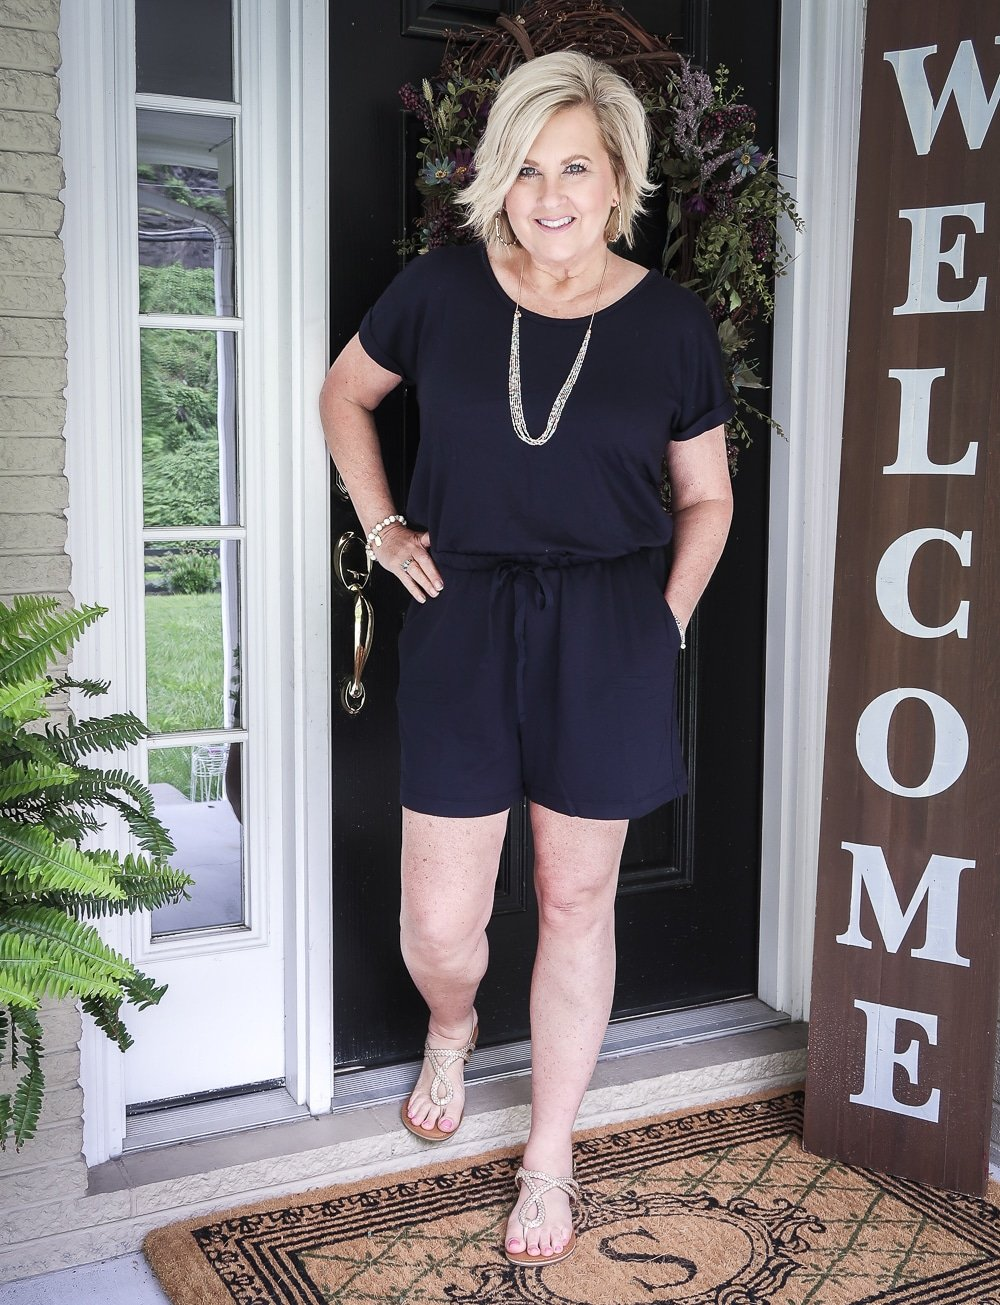 Fashion Blogger 50 Is Not Old is wearing a cute navy romper from Loft with gold braided sandals and gold jewelry